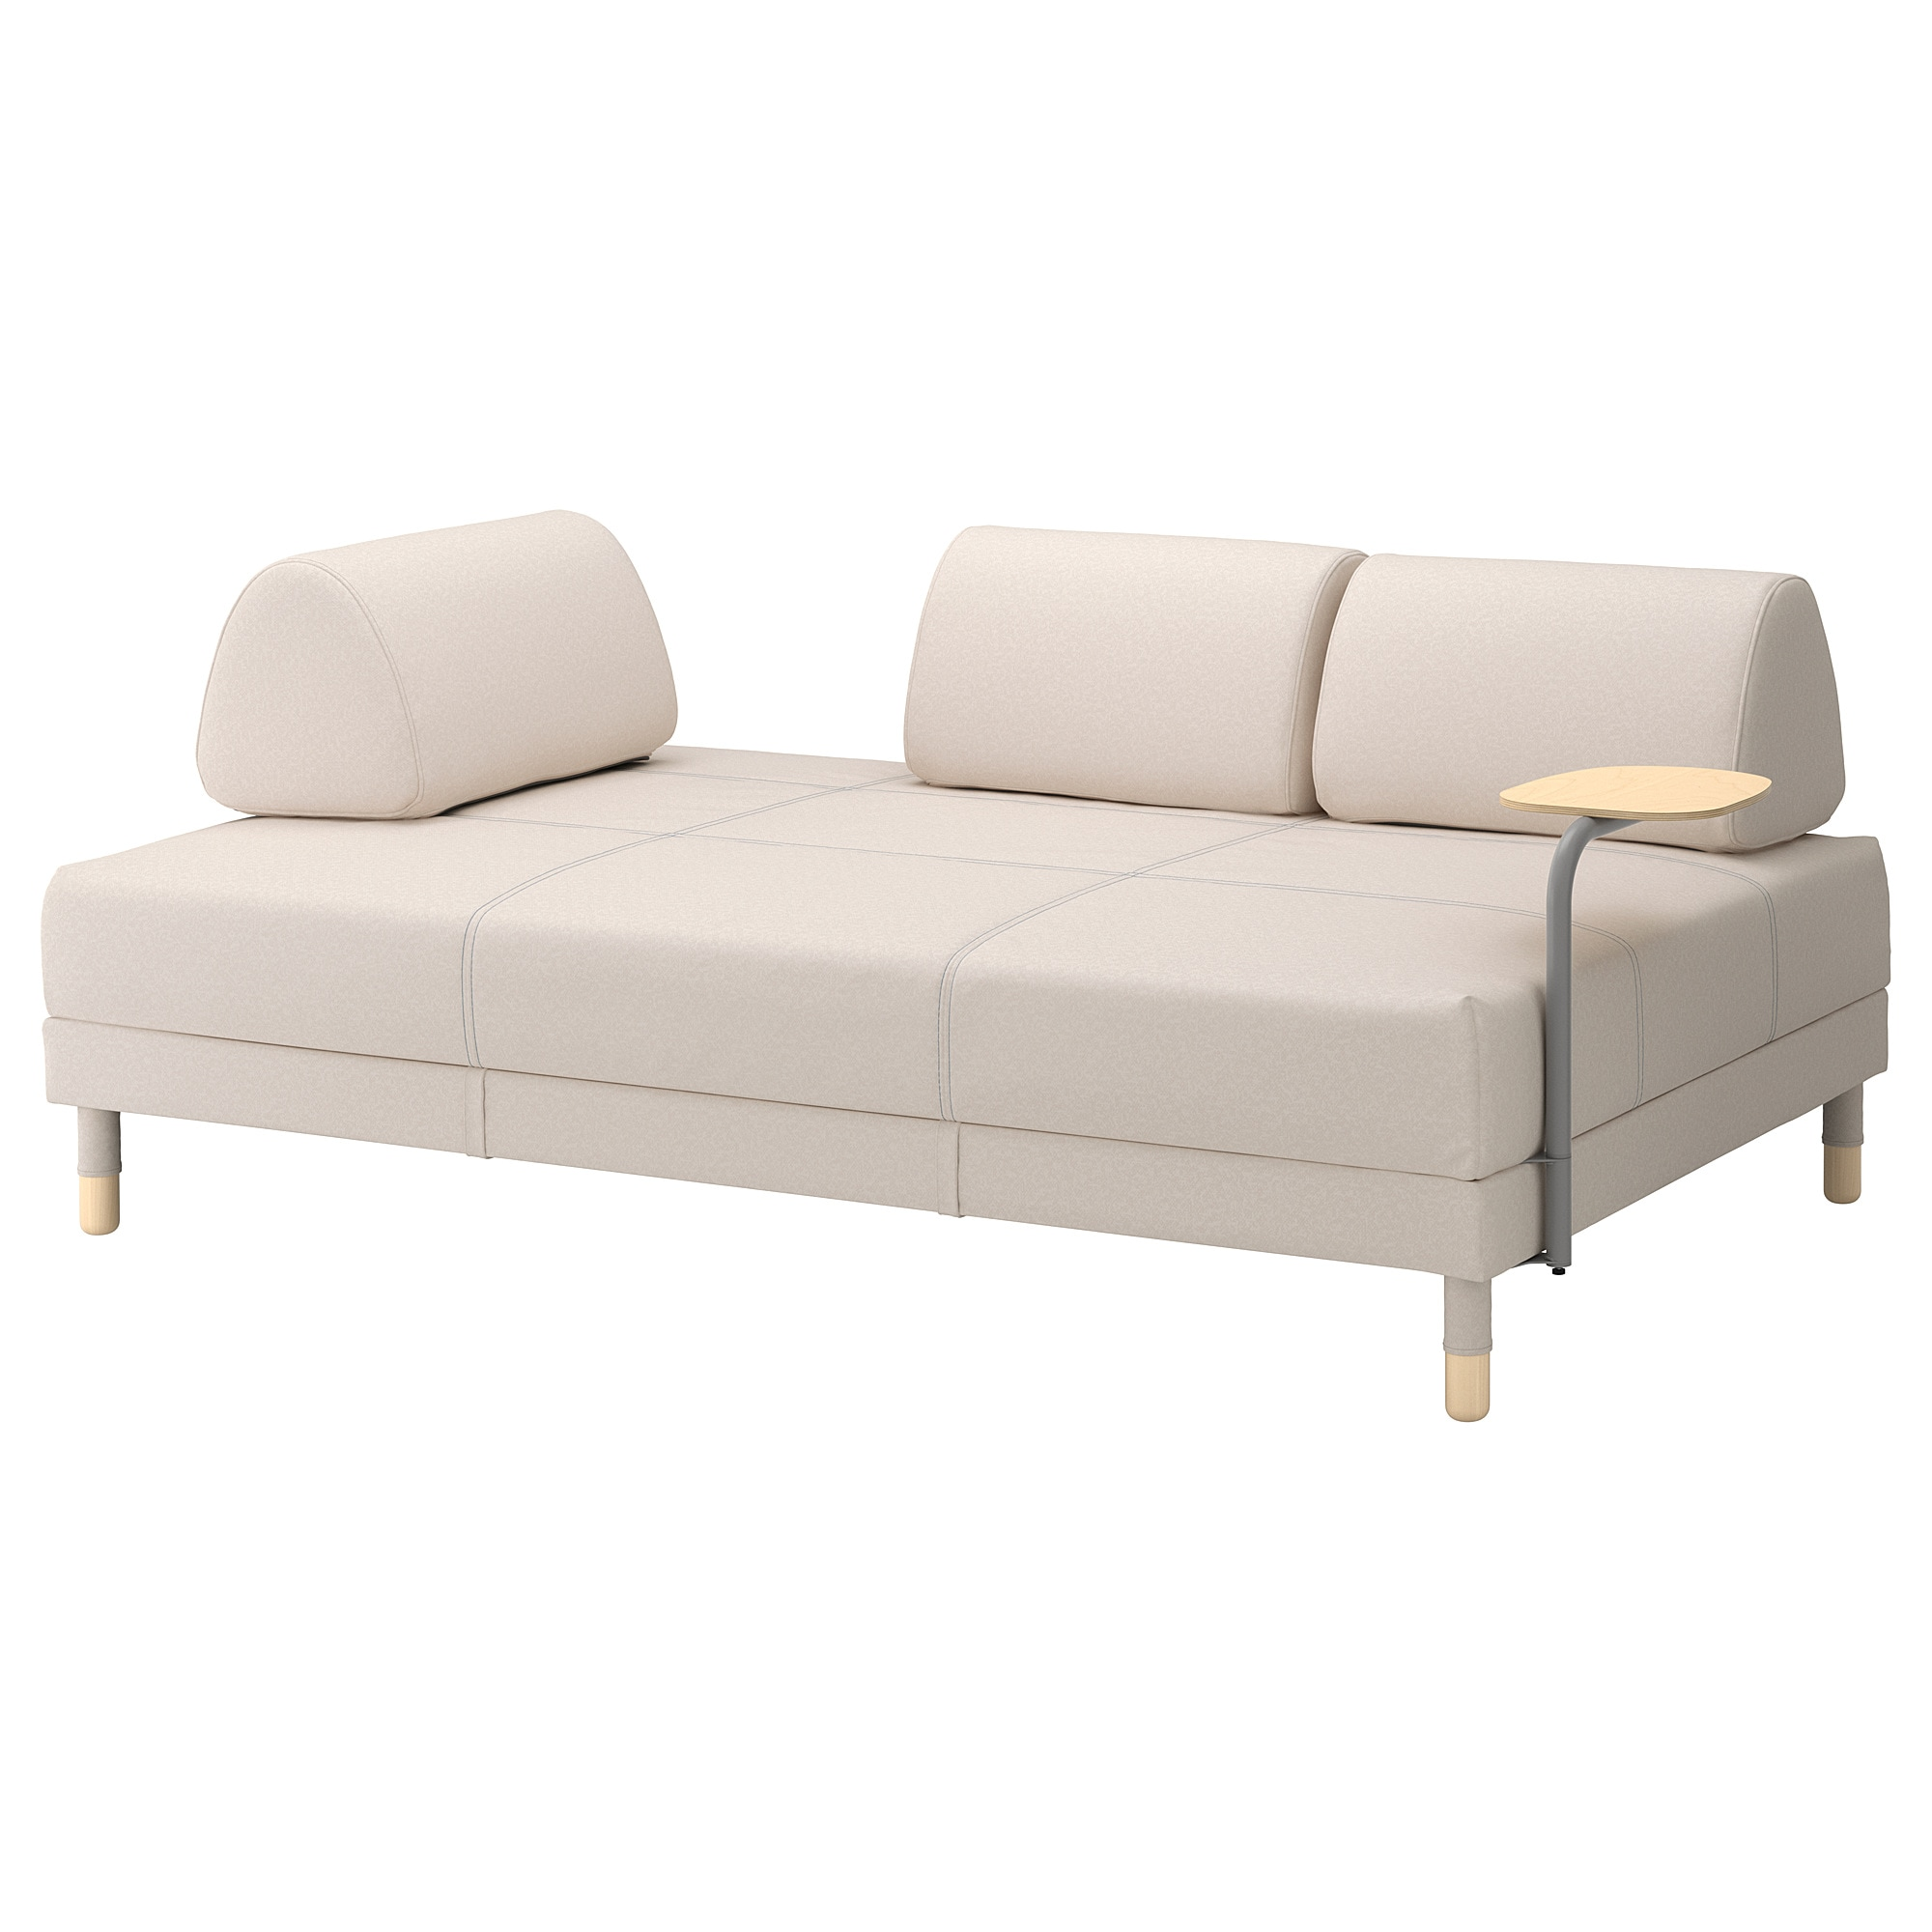 Sofa Dreams Outlet Flottebo Sleeper Sofa With Side Table Lofallet Beige